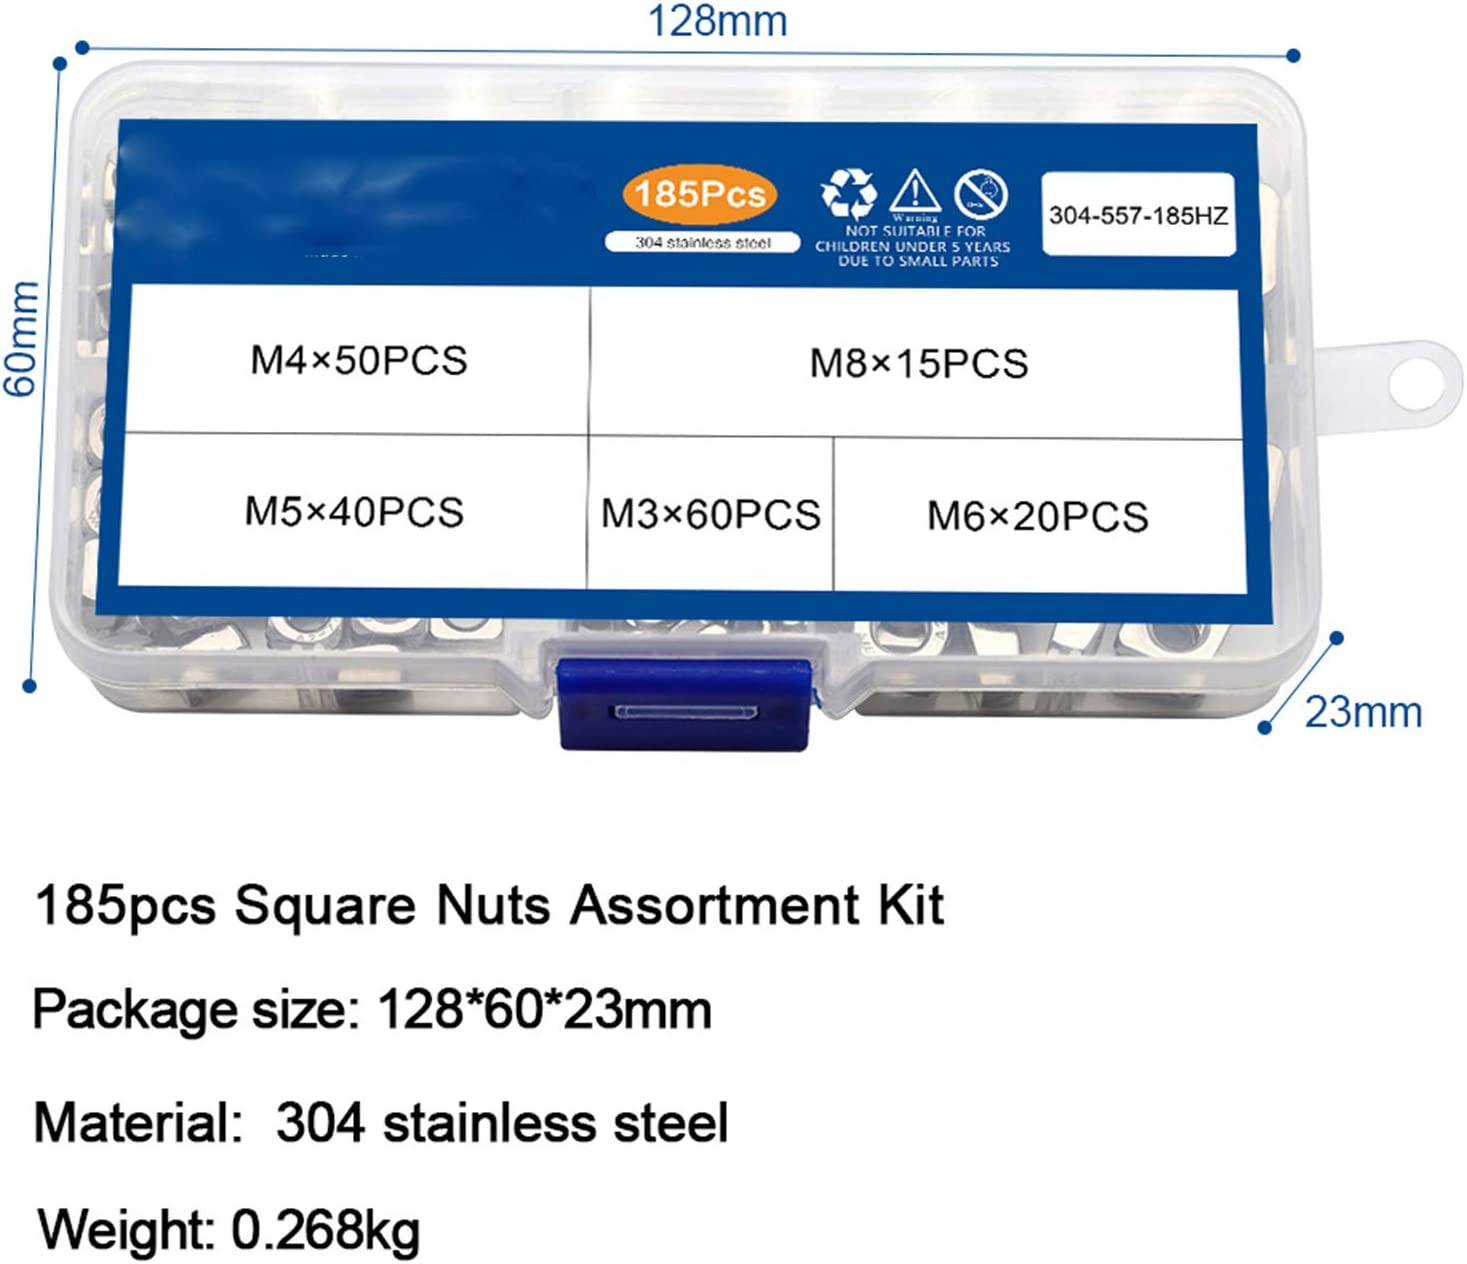 185pcs Square Nuts Assortment Kit A2 Stainless Steel M3 M4 M5 M6 M8 Metric Square Nuts Set Din557 Four-Sided Nuts